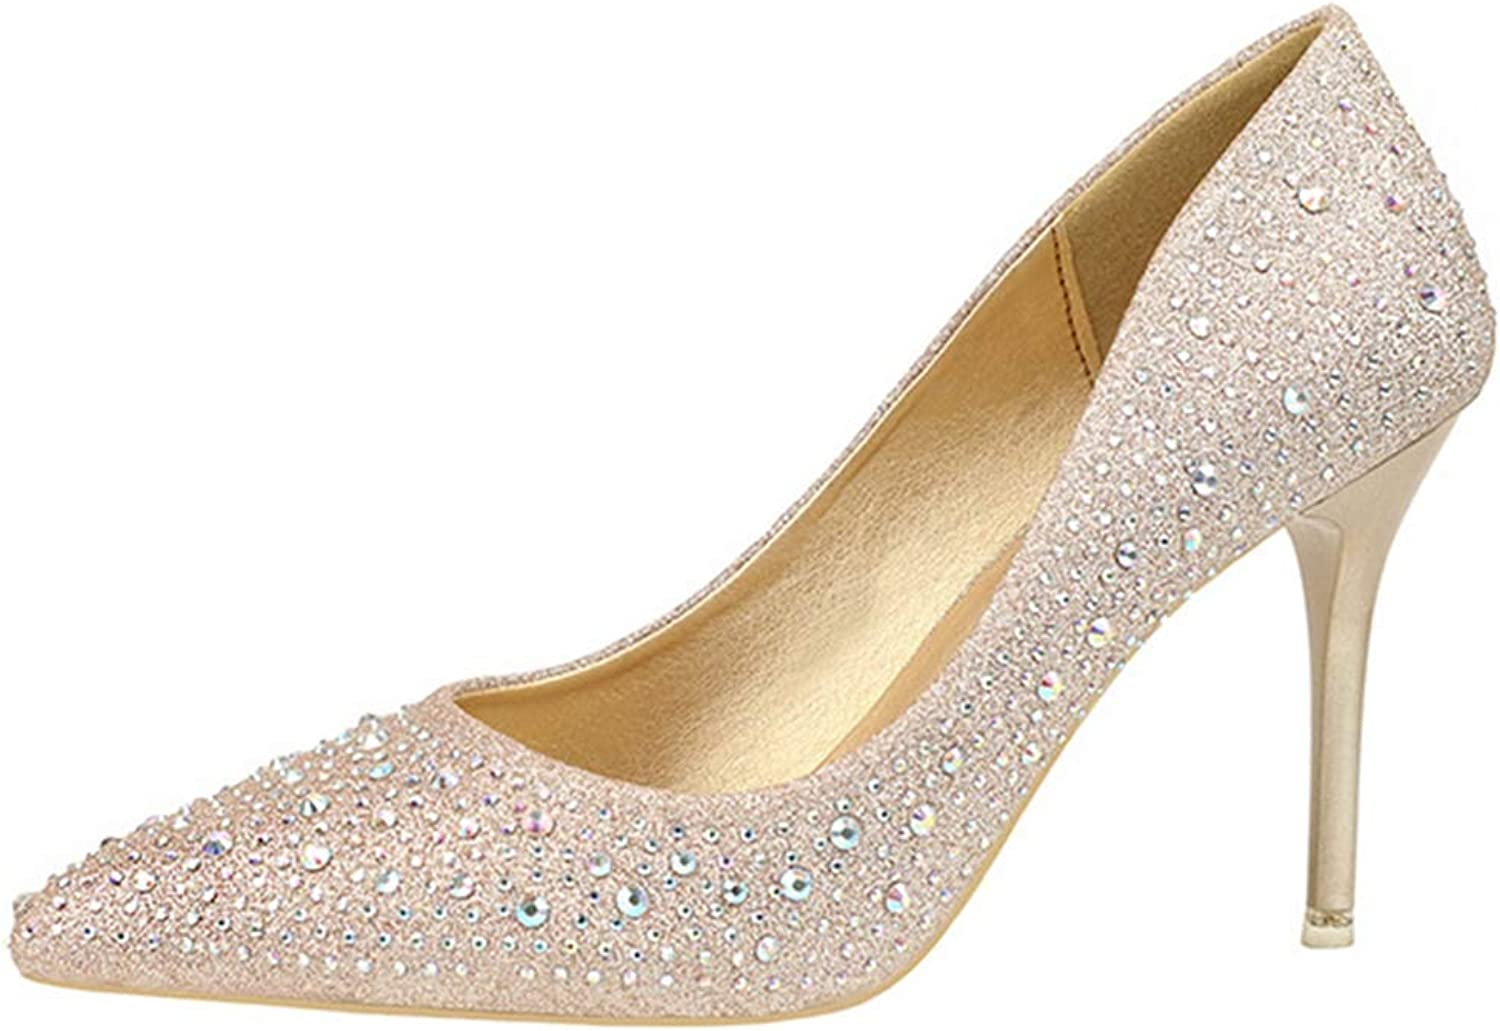 Drew Toby Women Pumps Pointed Toe Sequin Solid color Shallow Fashion Elegant High Heels